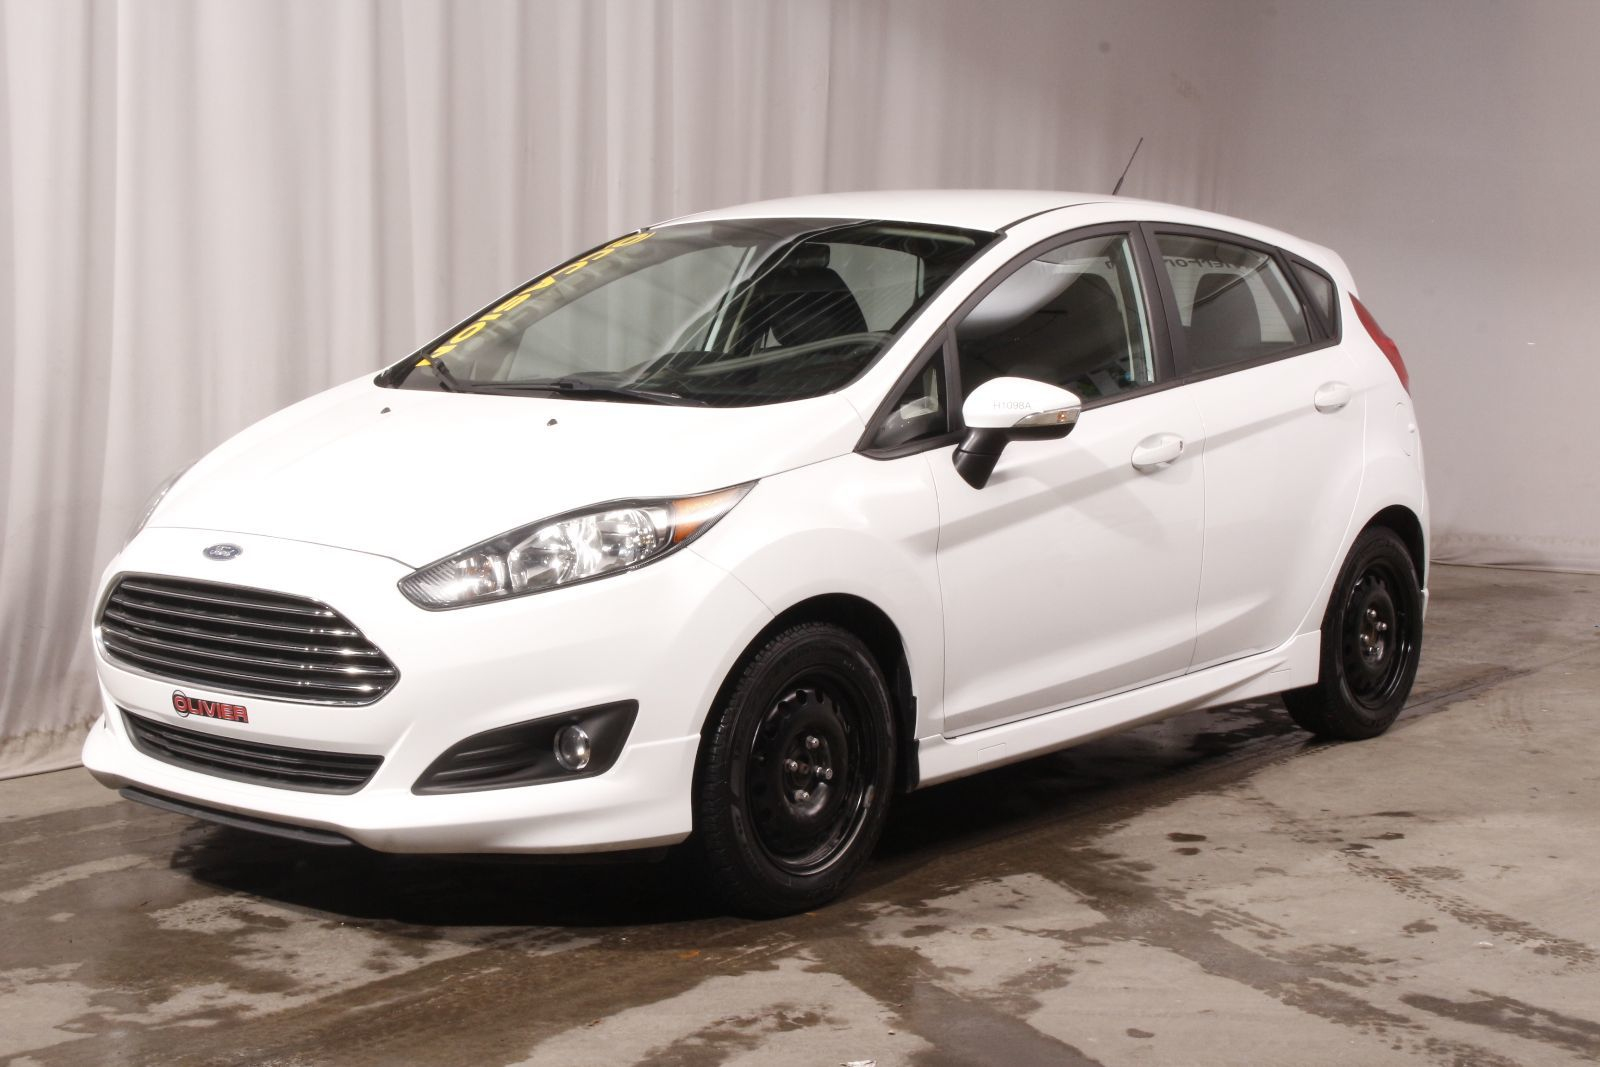 Pre-Owned 2015 Ford Fiesta SE 5 VIT BLUETHOOT NAV+CAM MAGS in Saint-Hubert  - Pre-Owned inventory - Olivier Ford Saint-Hubert in Saint-Hubert, Quebec